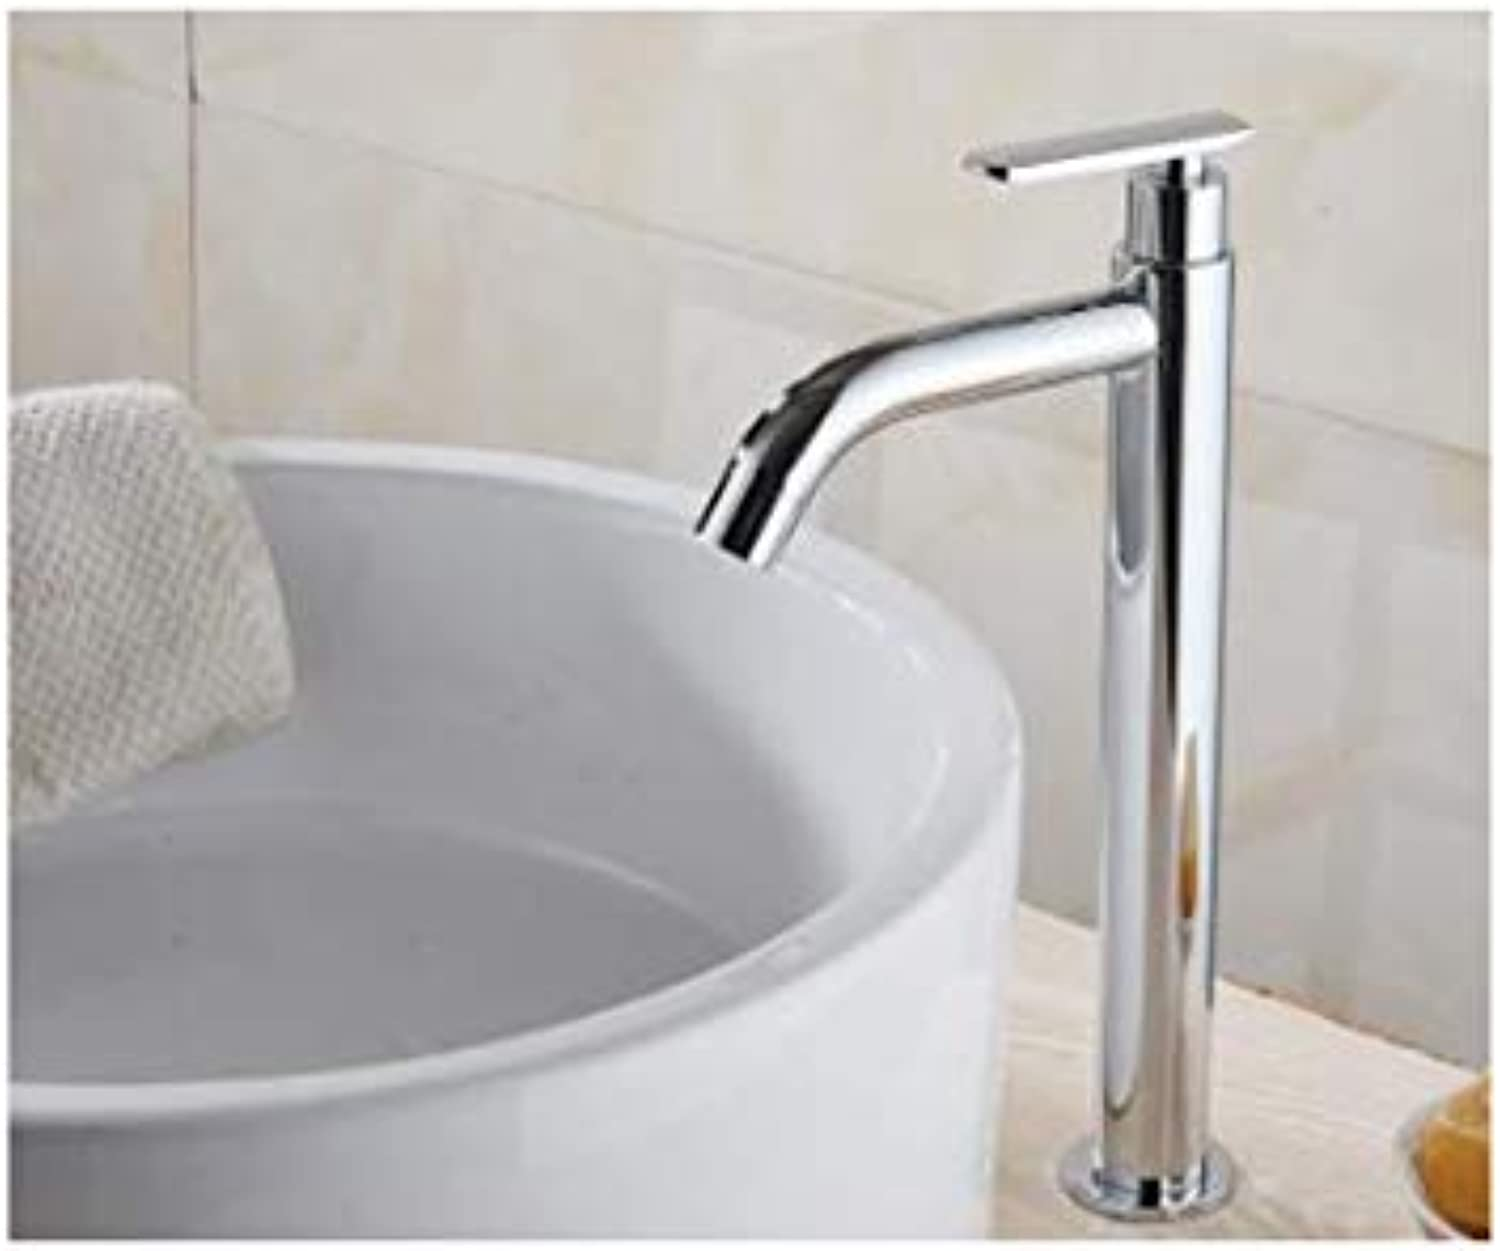 Single Cold Basin Faucet Bathroom Faucet Basin Mixer Bathroom Sink Faucet Tall Chrome Brass Faucet For Cold Water E